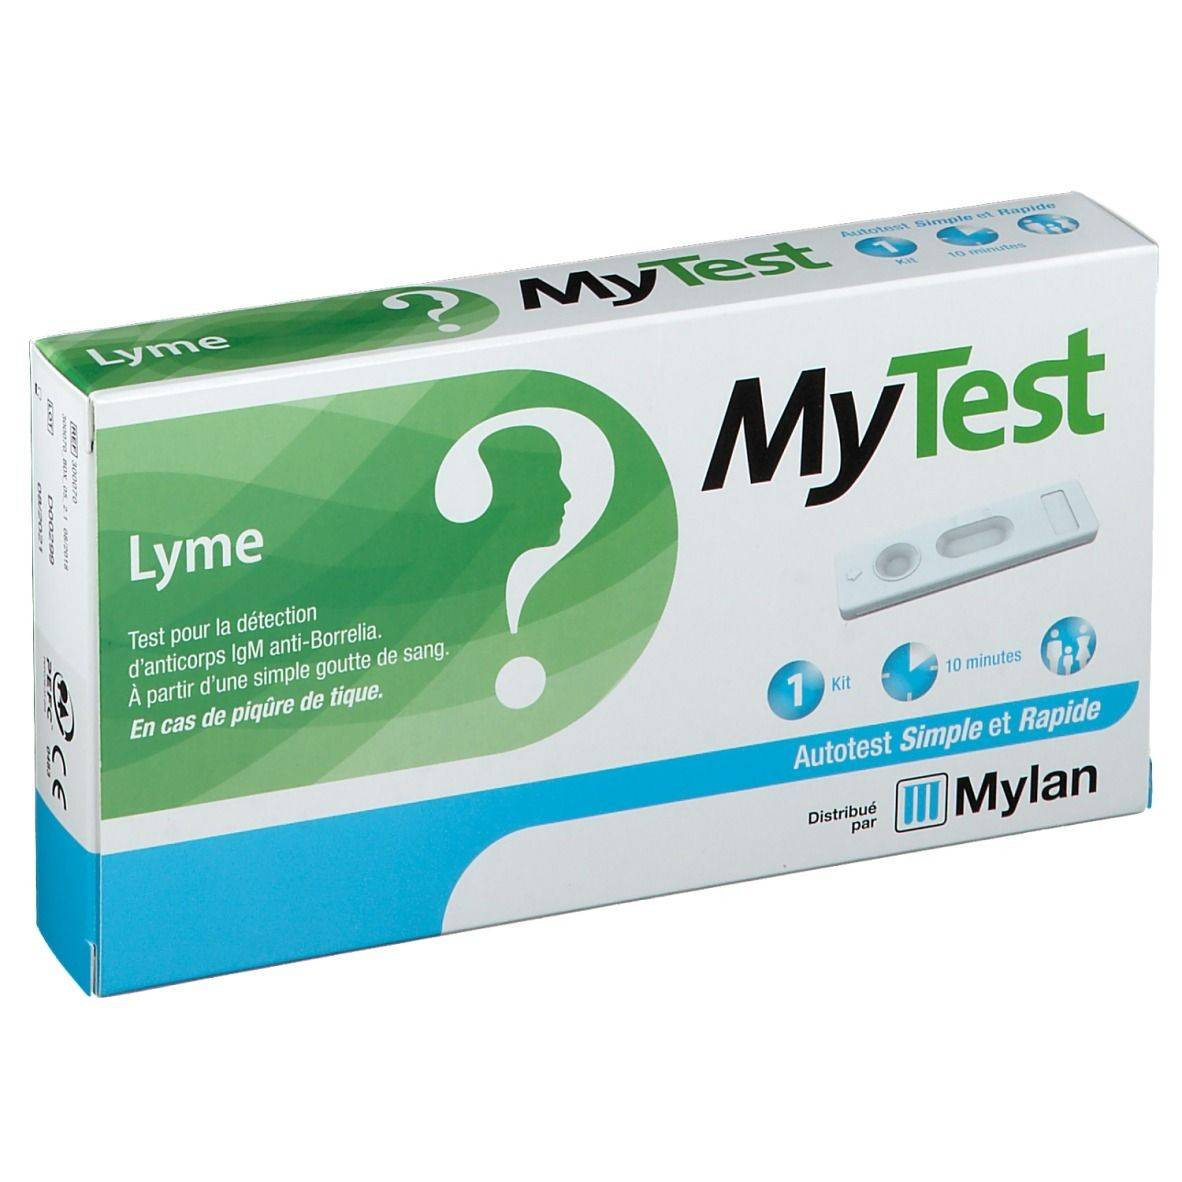 MyTest Lyme Test pc(s) test(s)